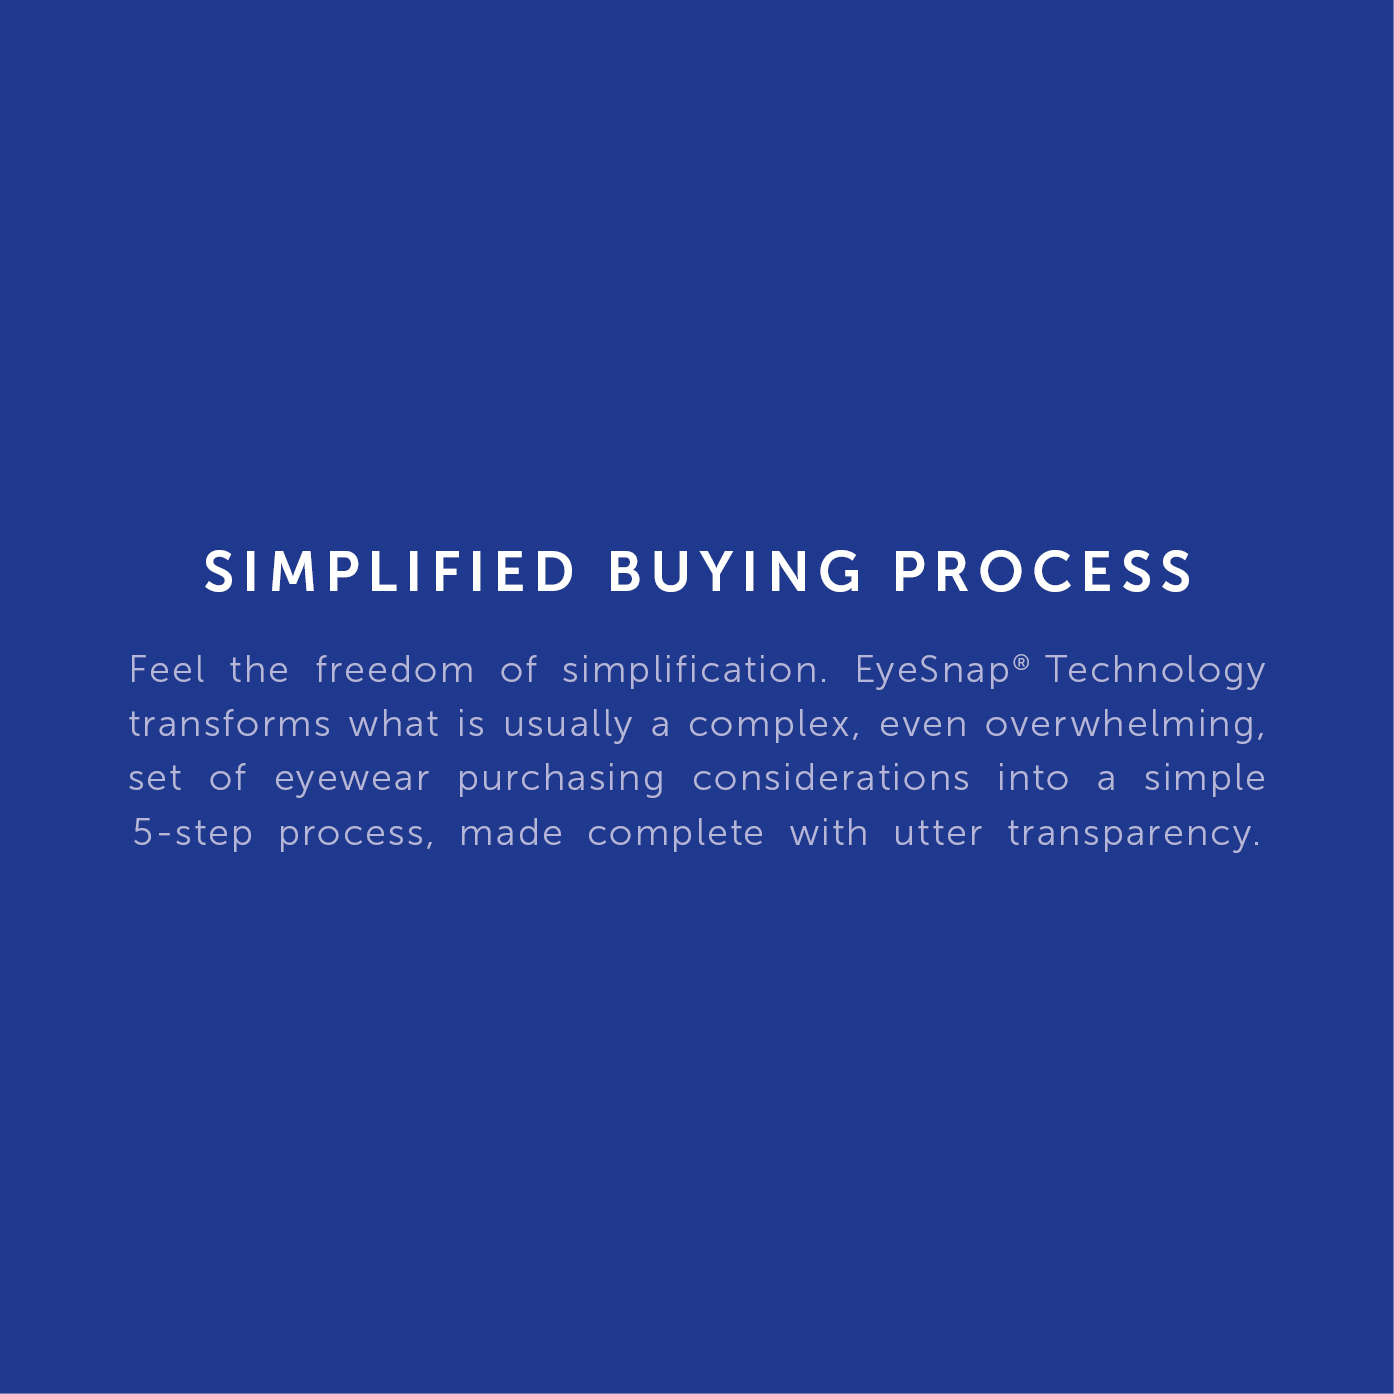 EyeSnapTechnology10.jpg